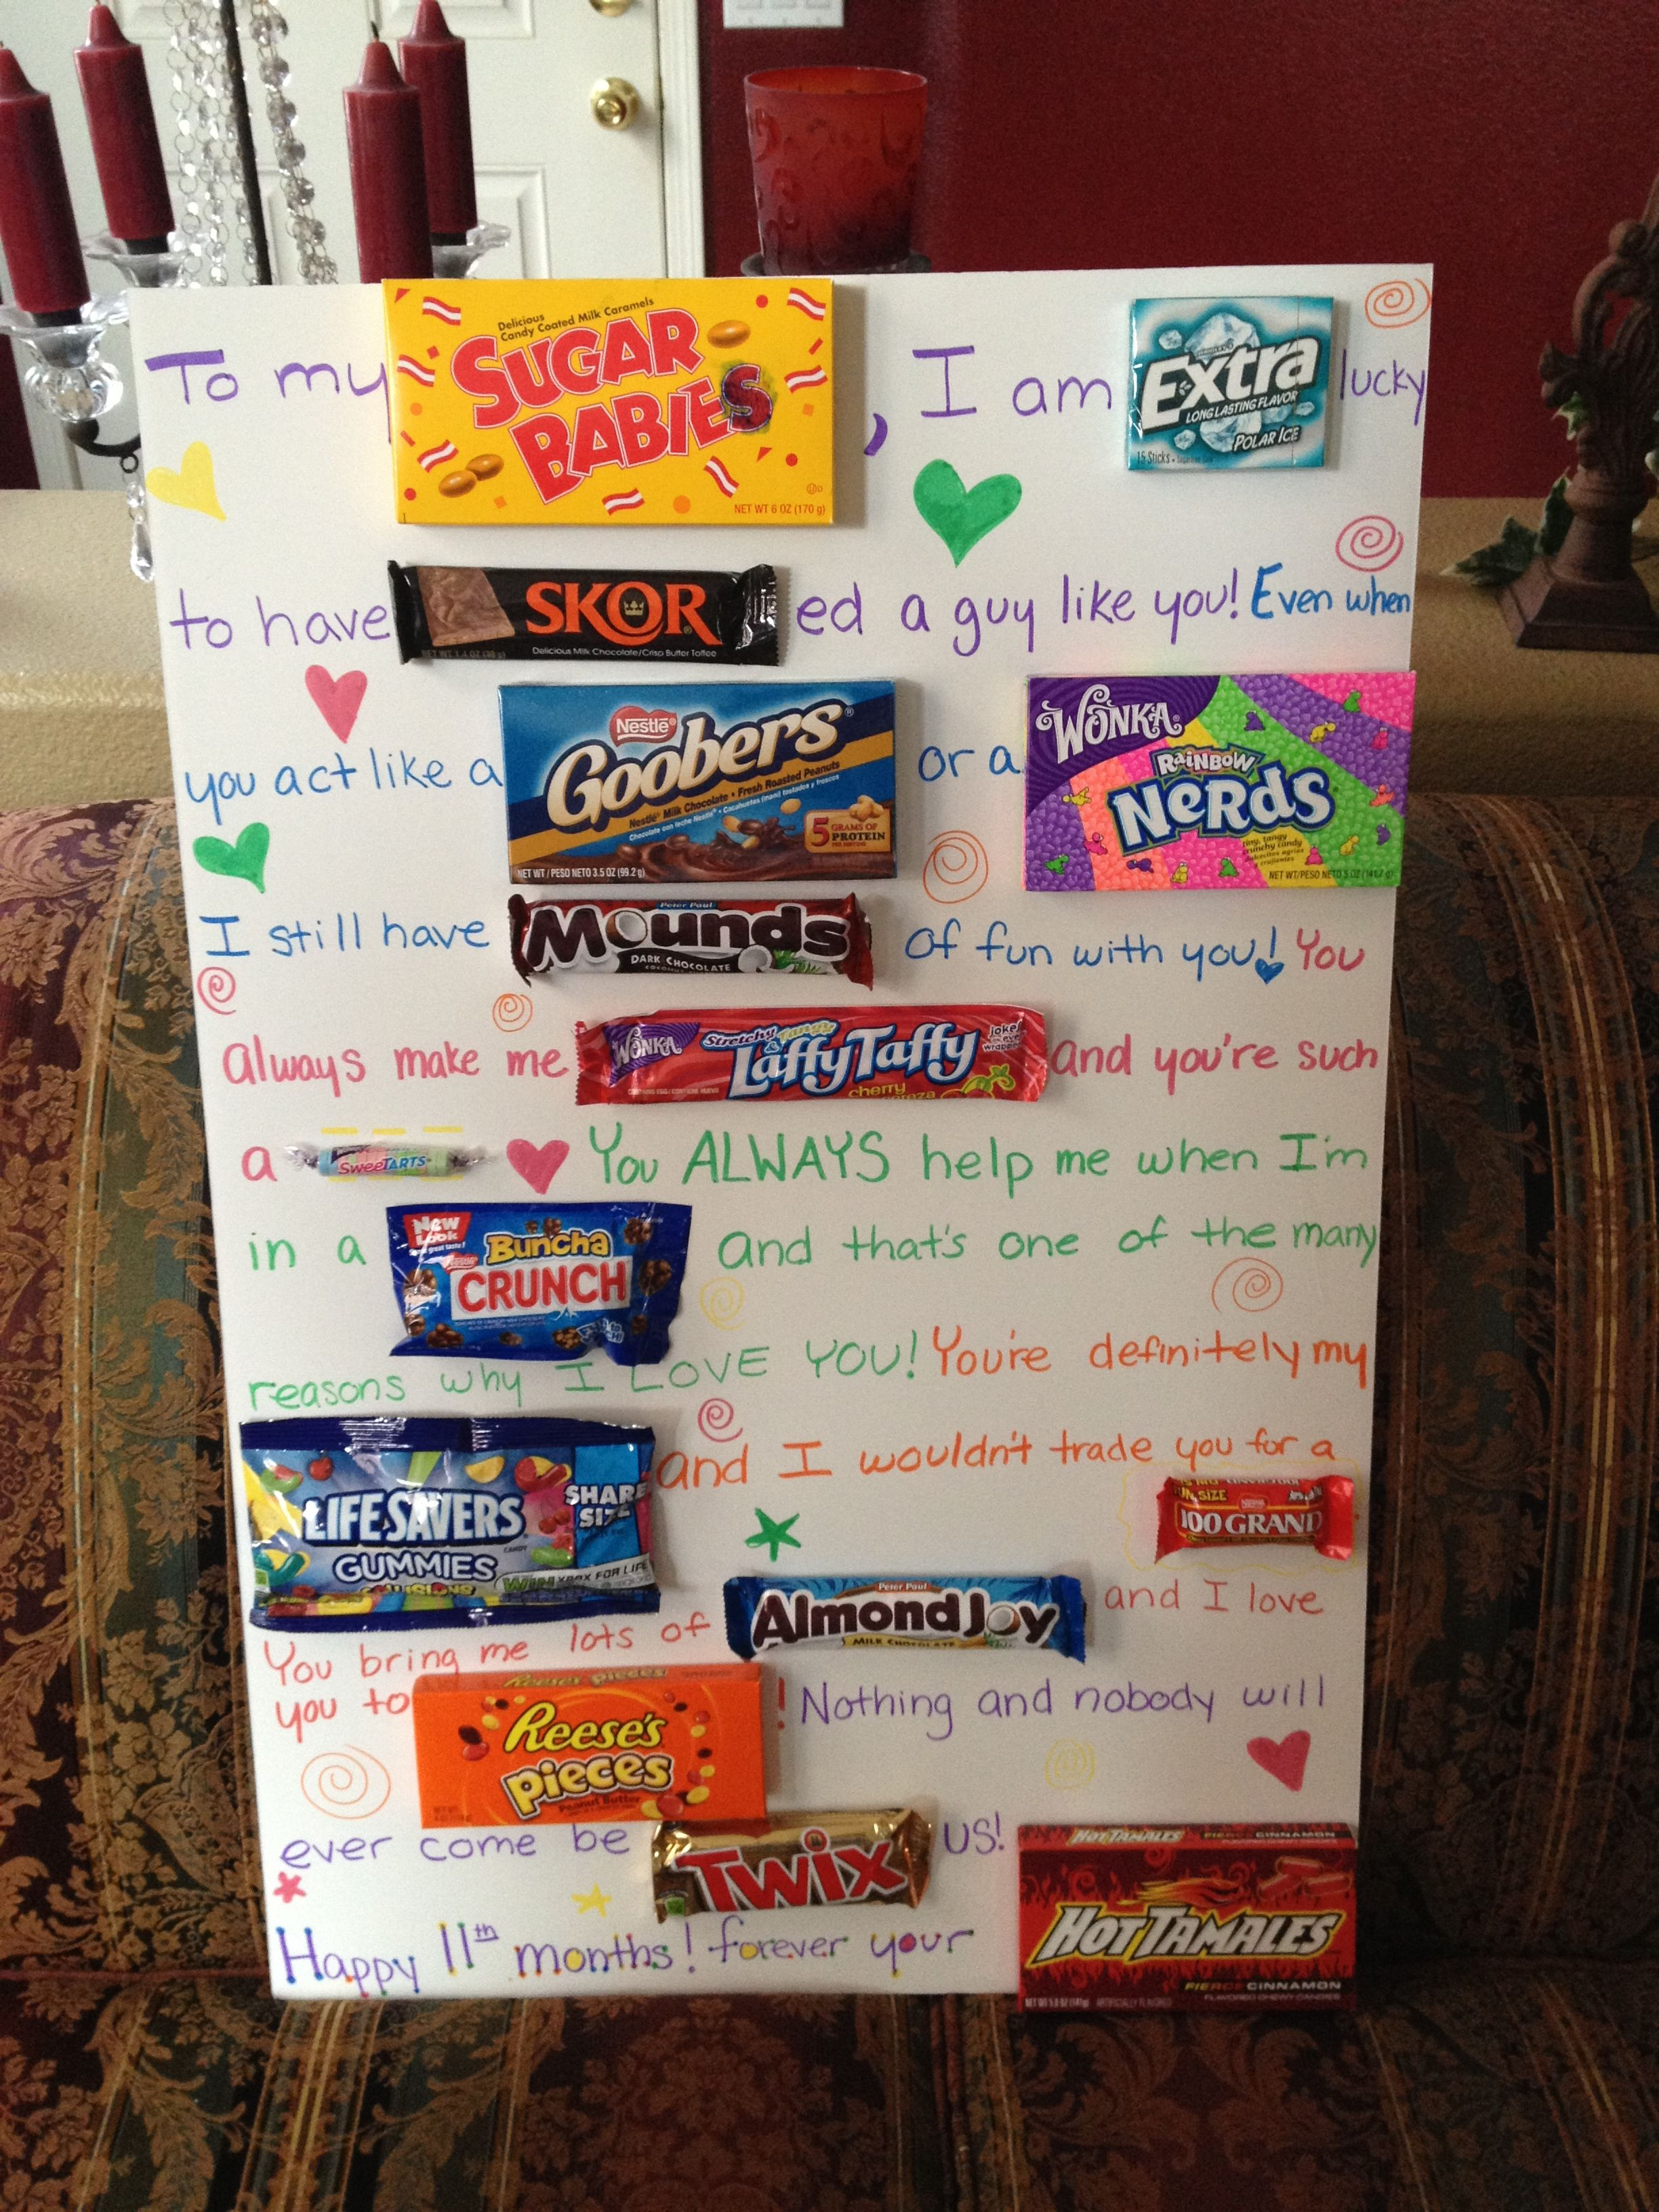 first wedding anniversary gift ideas for husband pinterest%0A That u    s so creative but you have to buy all that candy